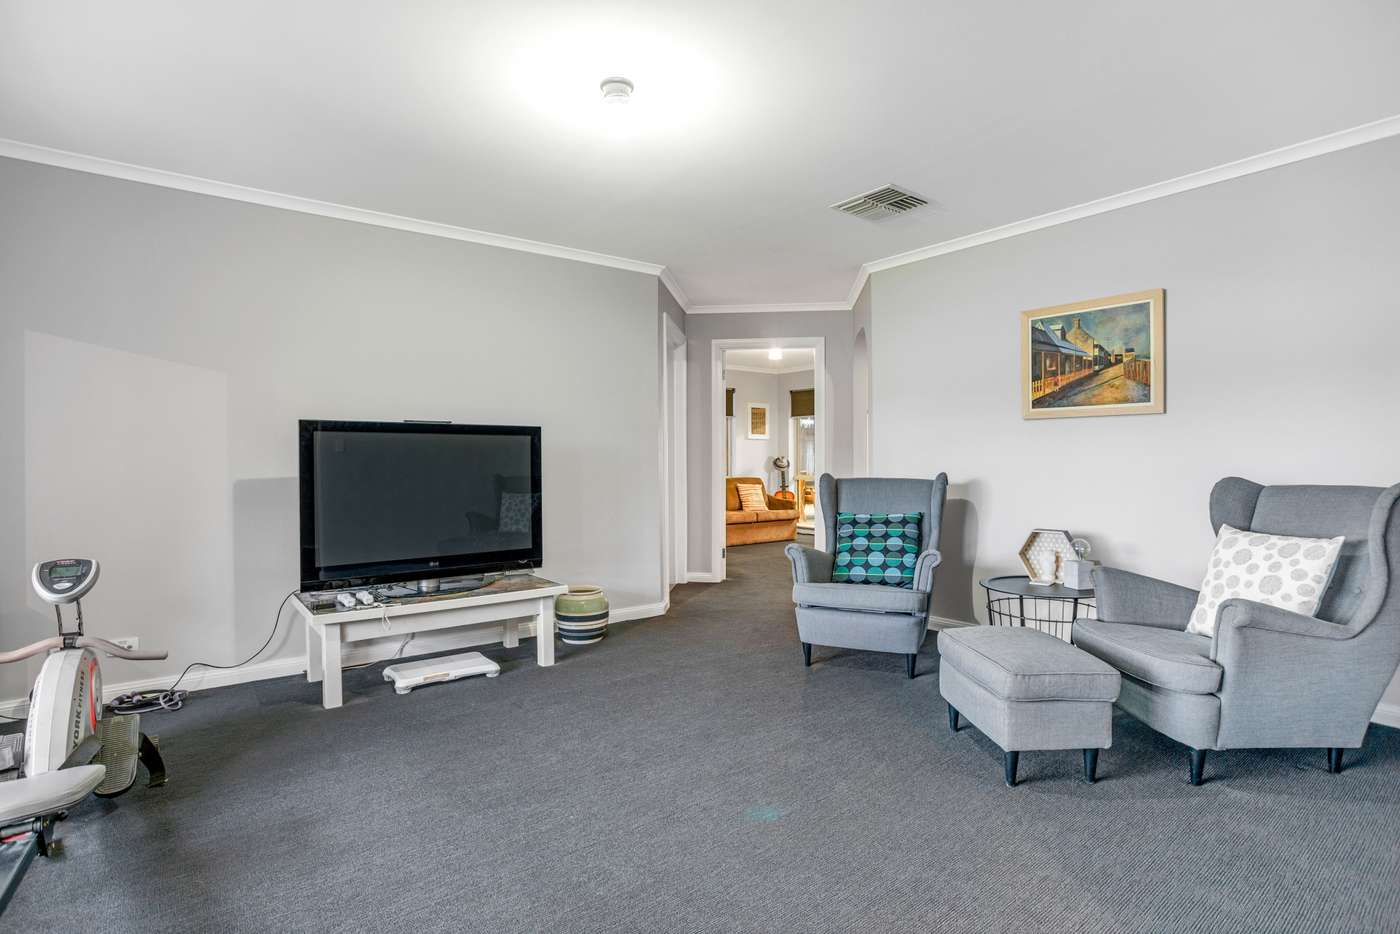 Sixth view of Homely house listing, 35 Simone Crescent, Morphett Vale SA 5162